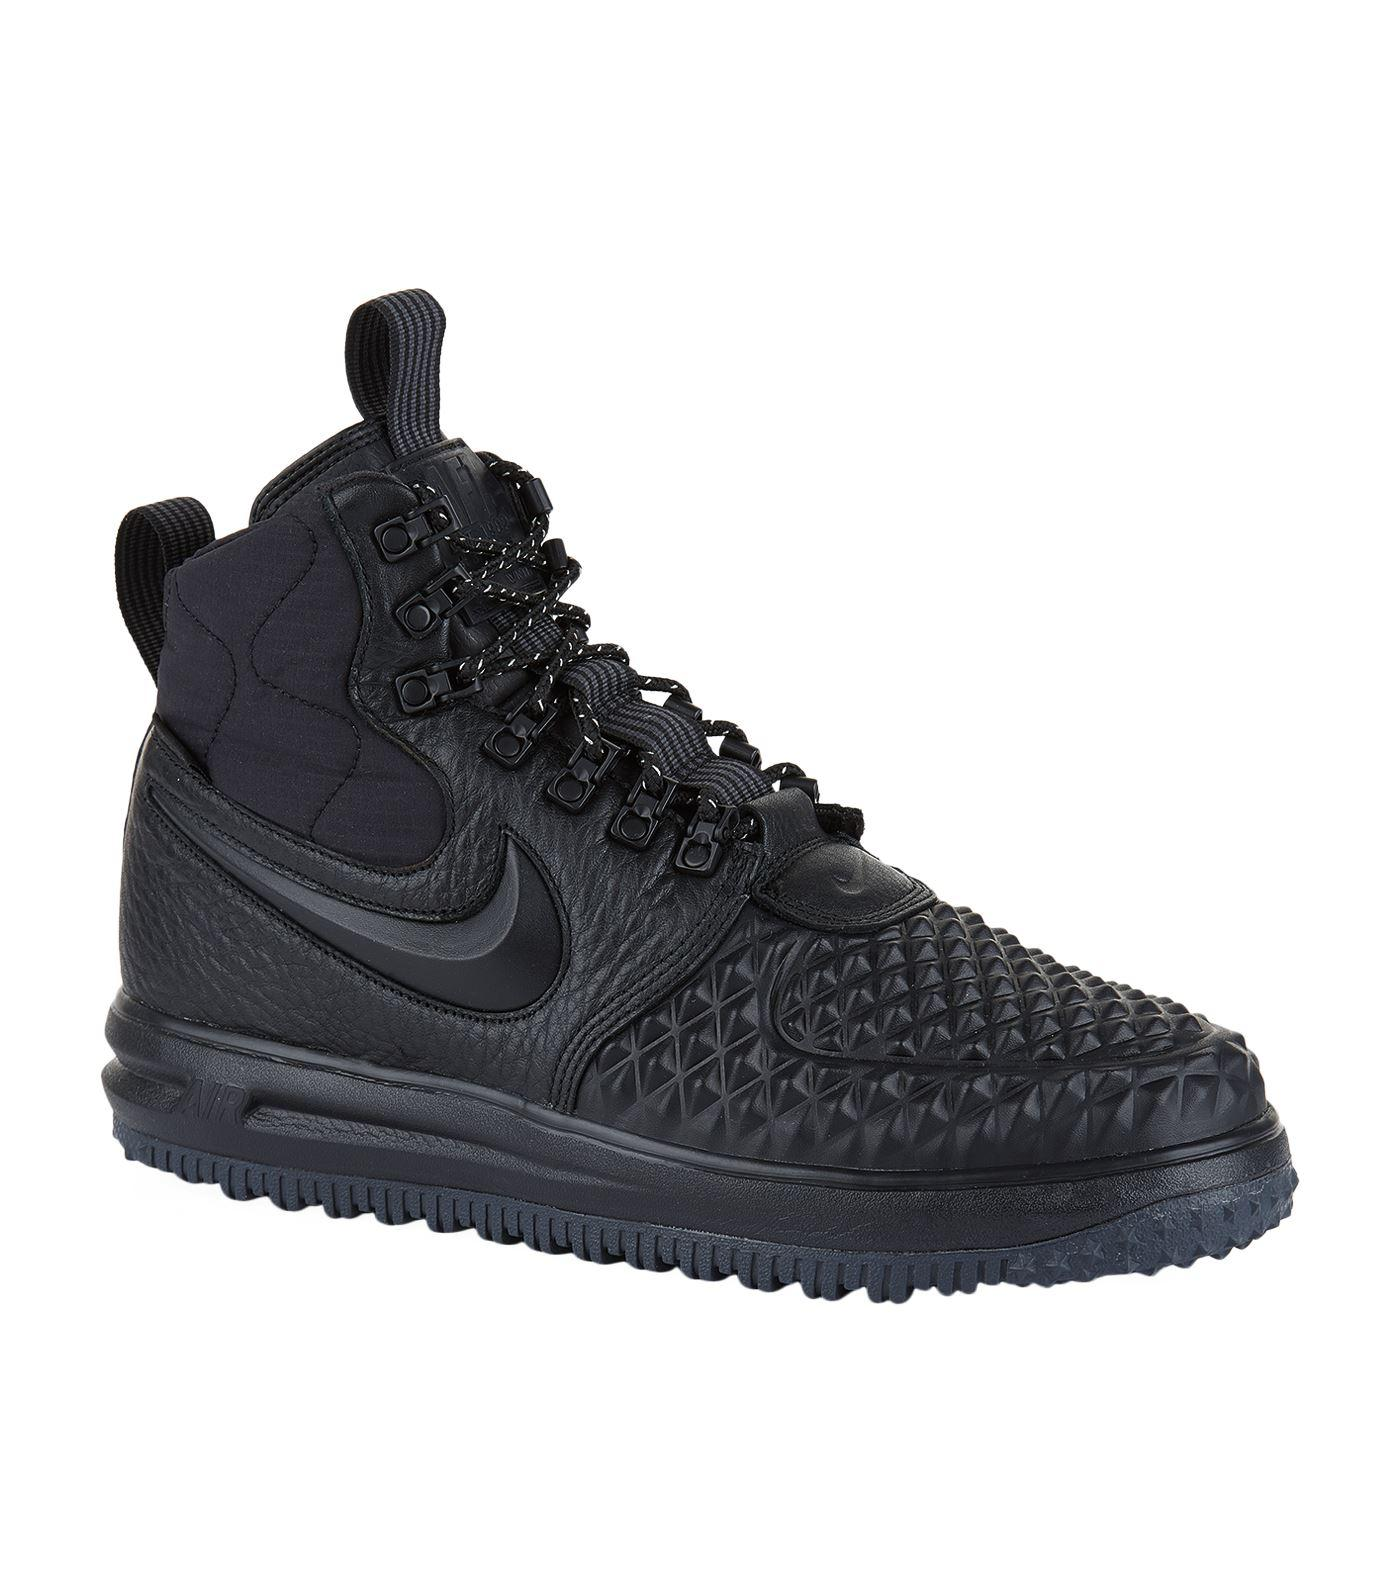 Nike. Men's Black Lunar Force 1 Duckboot